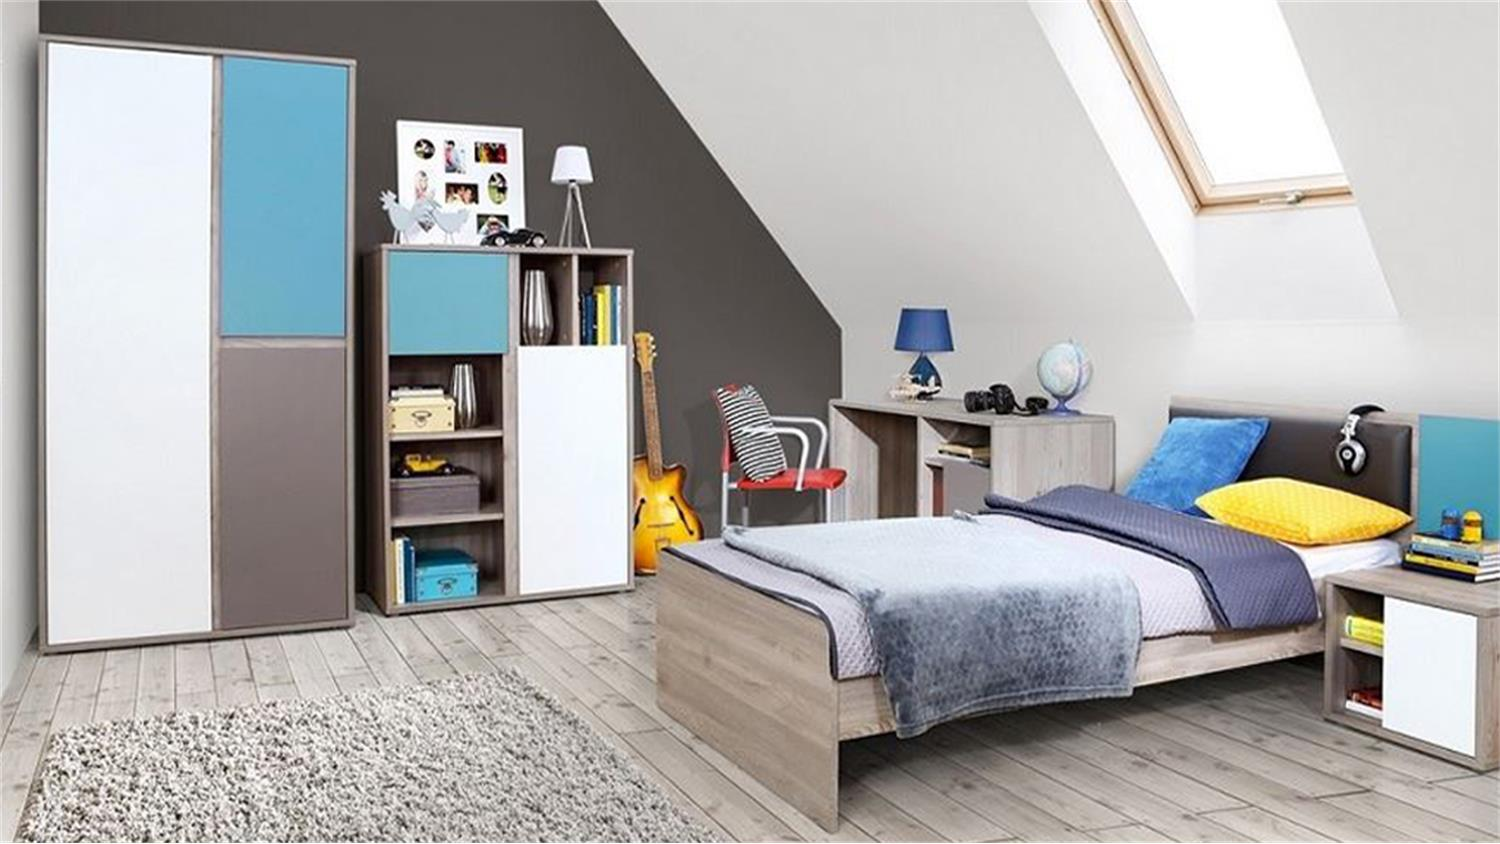 jugendzimmer sirsey kinderzimmer 5 teilig eiche und blau grau wei. Black Bedroom Furniture Sets. Home Design Ideas